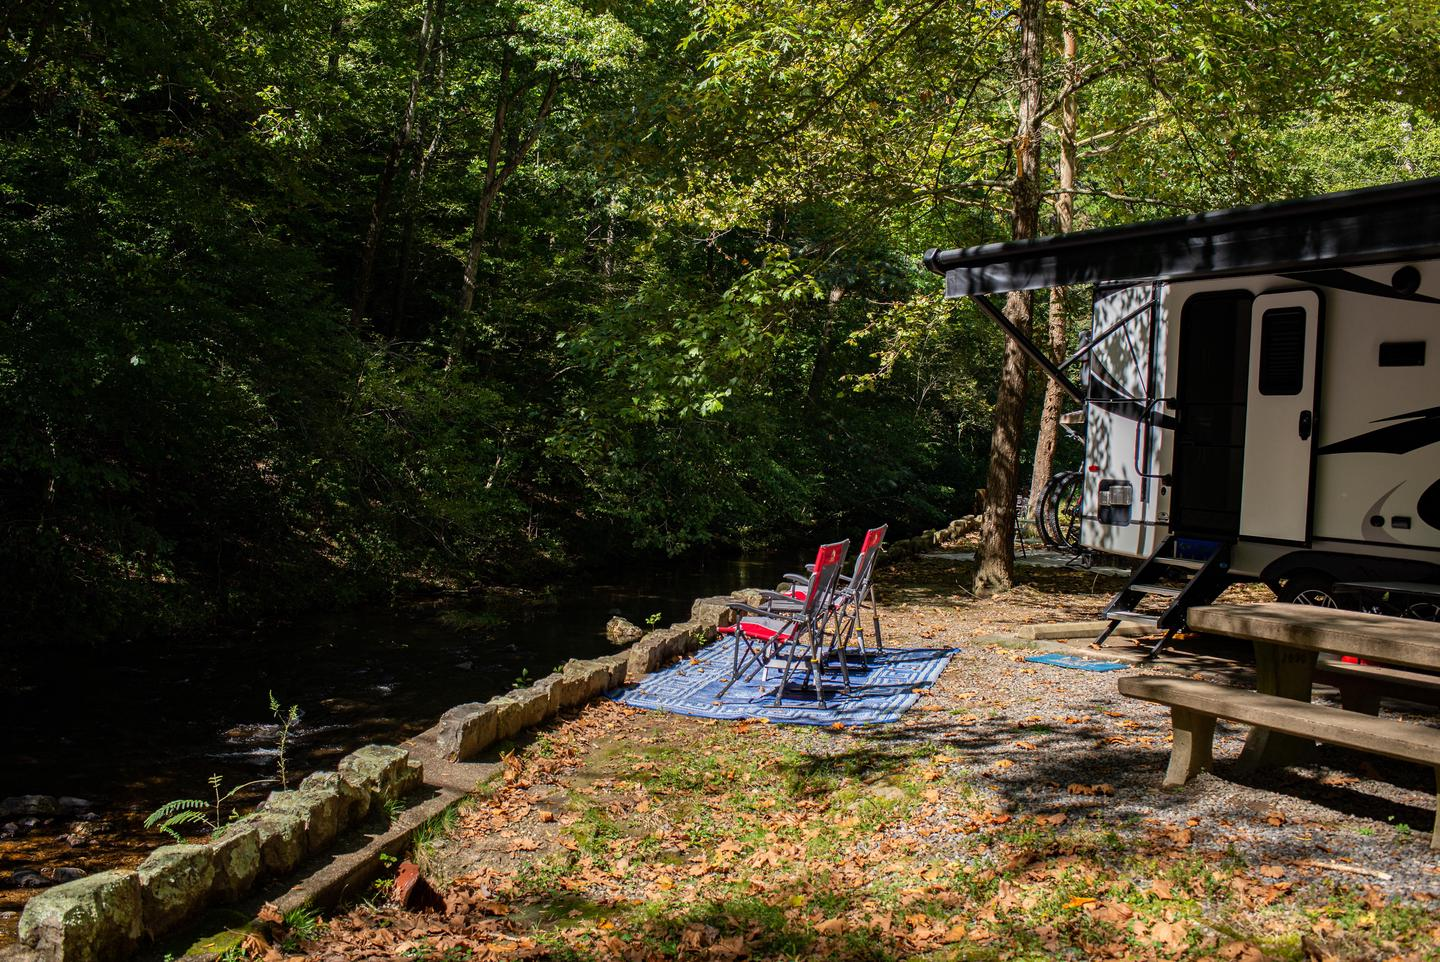 Relax by the CreekMany campsites are located along Gulpha Creek